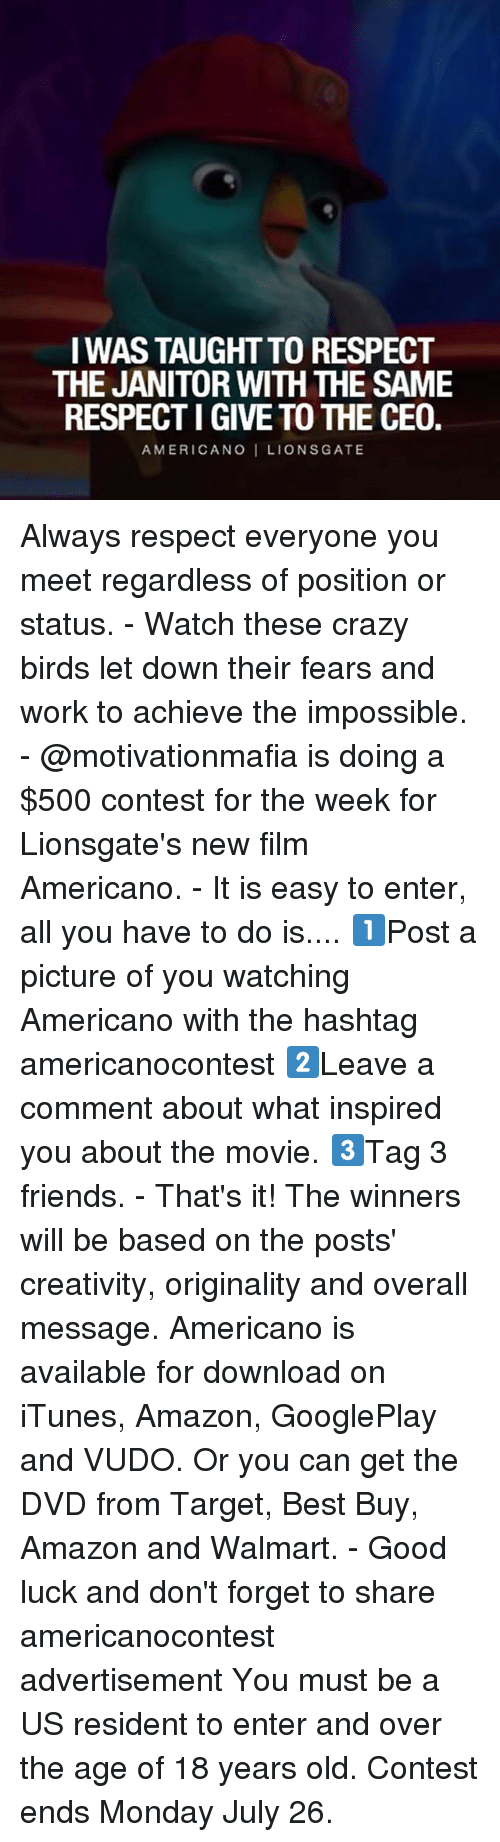 originality: I WAS TAUGHT TO RESPECT  THE JANITOR WITH THE SAME  RESPECTI GIVE TO THE CEO.  AMERICANO I LIONSGATE Always respect everyone you meet regardless of position or status. - Watch these crazy birds let down their fears and work to achieve the impossible. - @motivationmafia is doing a $500 contest for the week for Lionsgate's new film Americano. - It is easy to enter, all you have to do is.... 1️⃣Post a picture of you watching Americano with the hashtag americanocontest 2️⃣Leave a comment about what inspired you about the movie. 3️⃣Tag 3 friends. - That's it! The winners will be based on the posts' creativity, originality and overall message. Americano is available for download on iTunes, Amazon, GooglePlay and VUDO. Or you can get the DVD from Target, Best Buy, Amazon and Walmart. - Good luck and don't forget to share americanocontest advertisement You must be a US resident to enter and over the age of 18 years old. Contest ends Monday July 26.